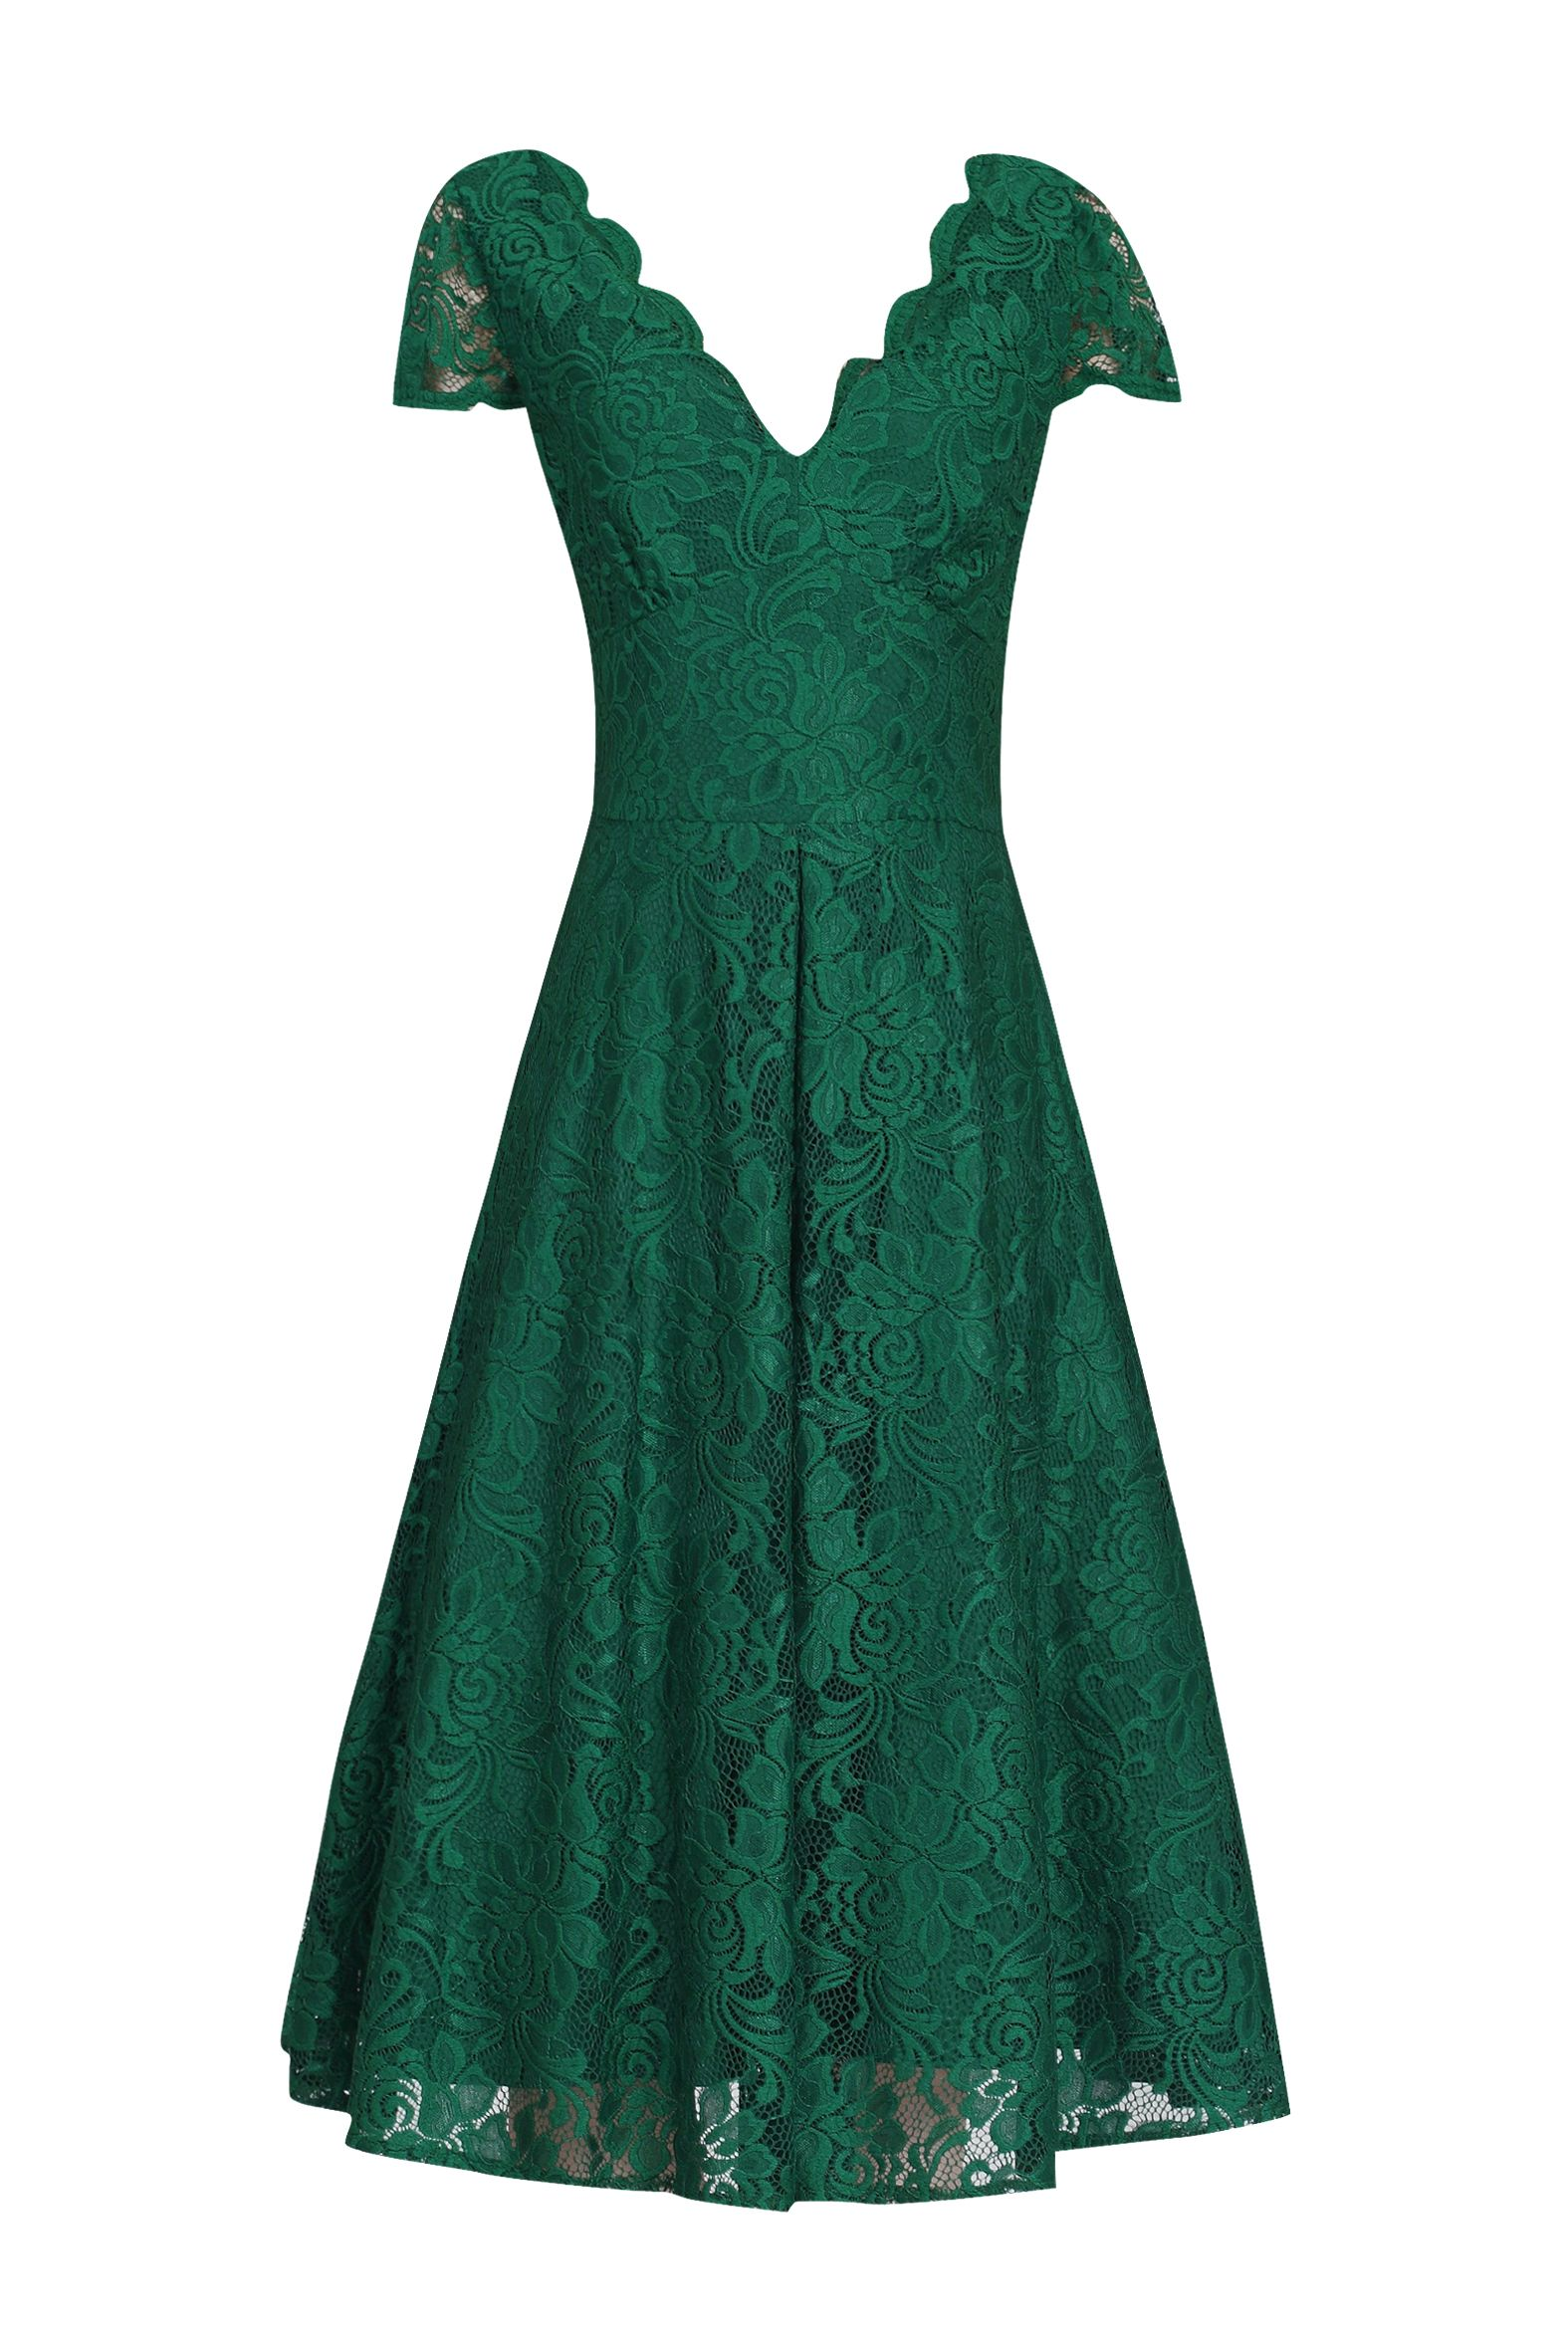 Jolie Moi Cap Sleeve Lace Prom Dress, Green